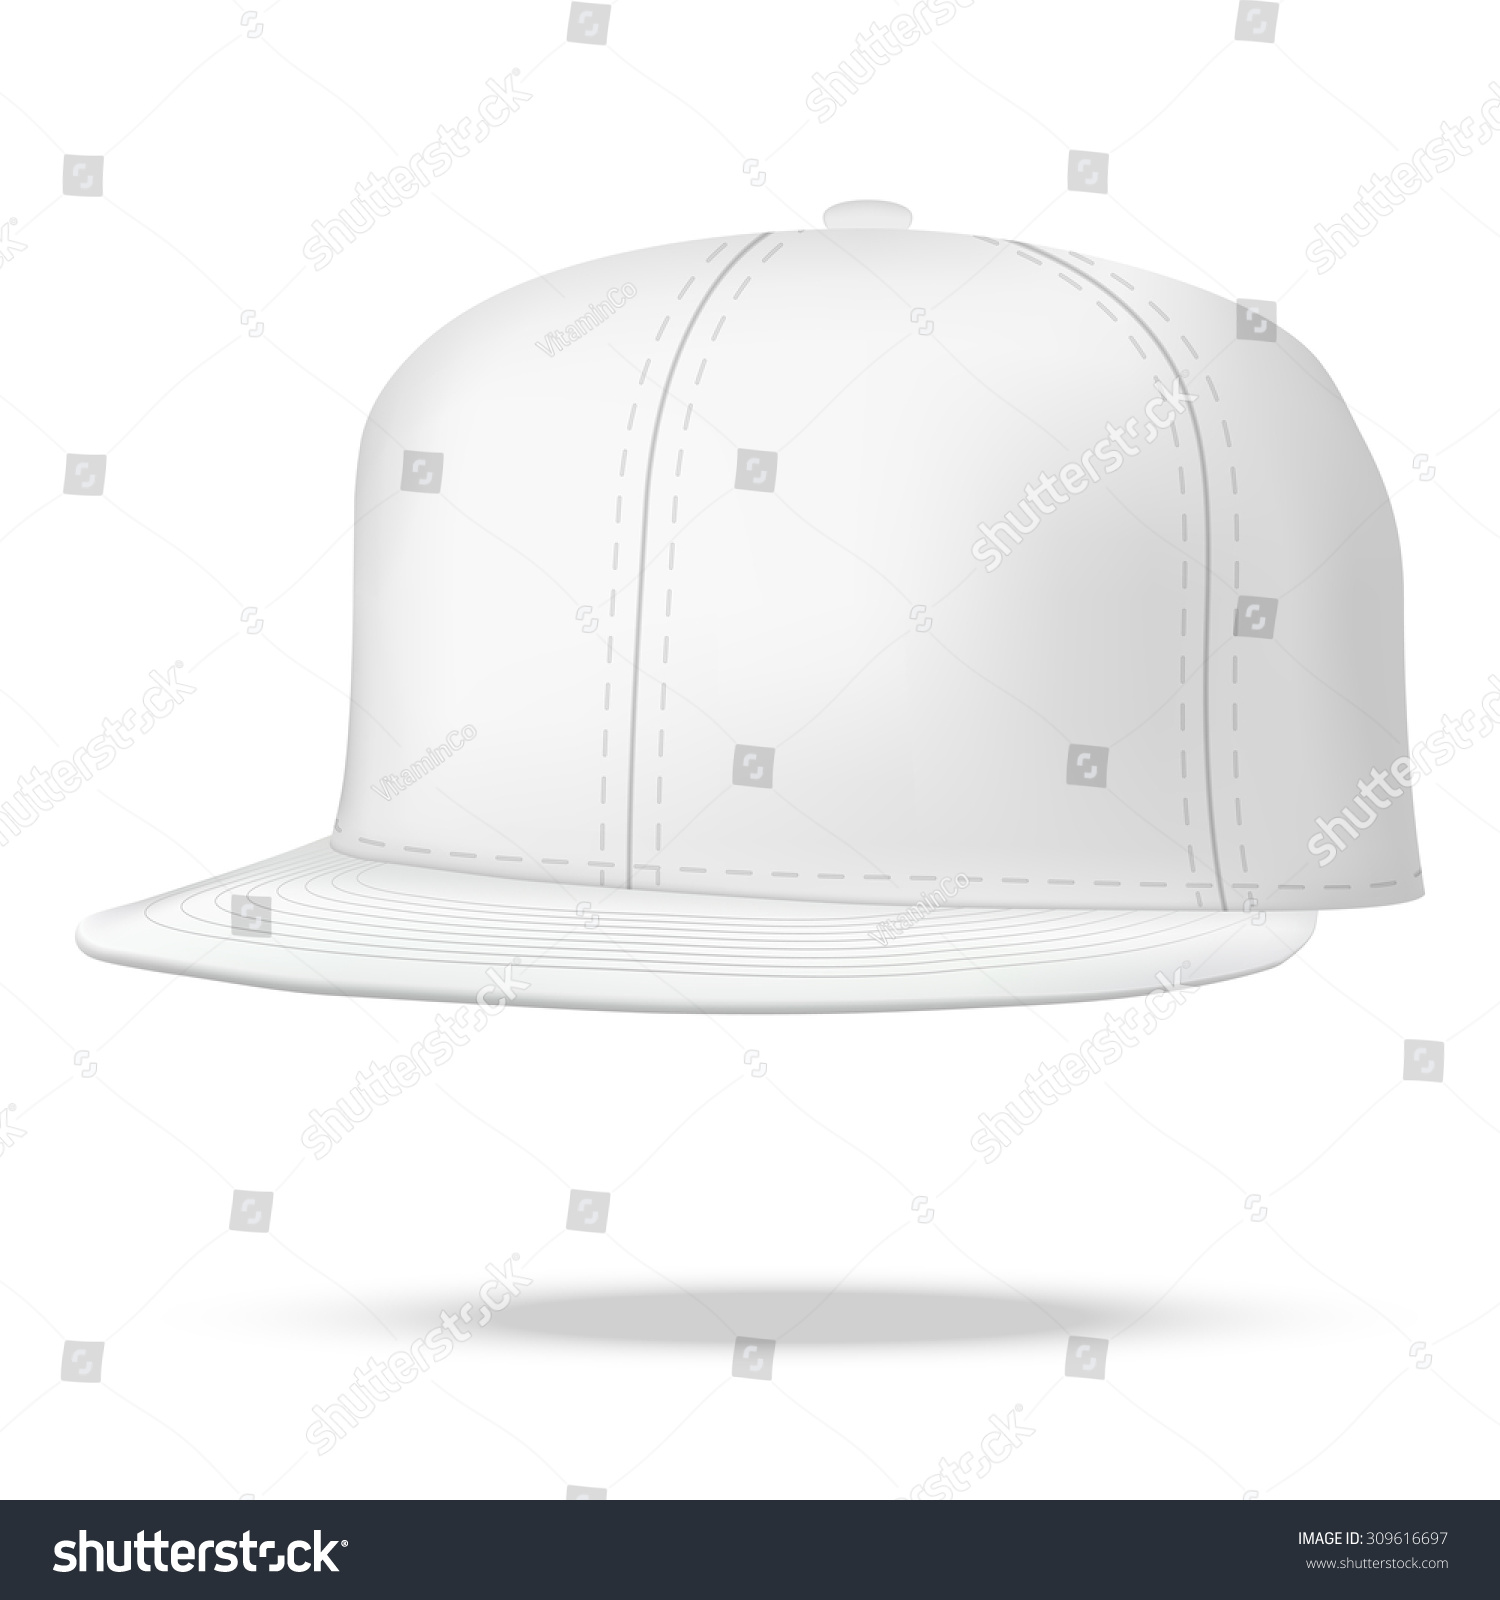 Rap Template | Layout Male White Rap Cap Template Stock Illustration 309616697